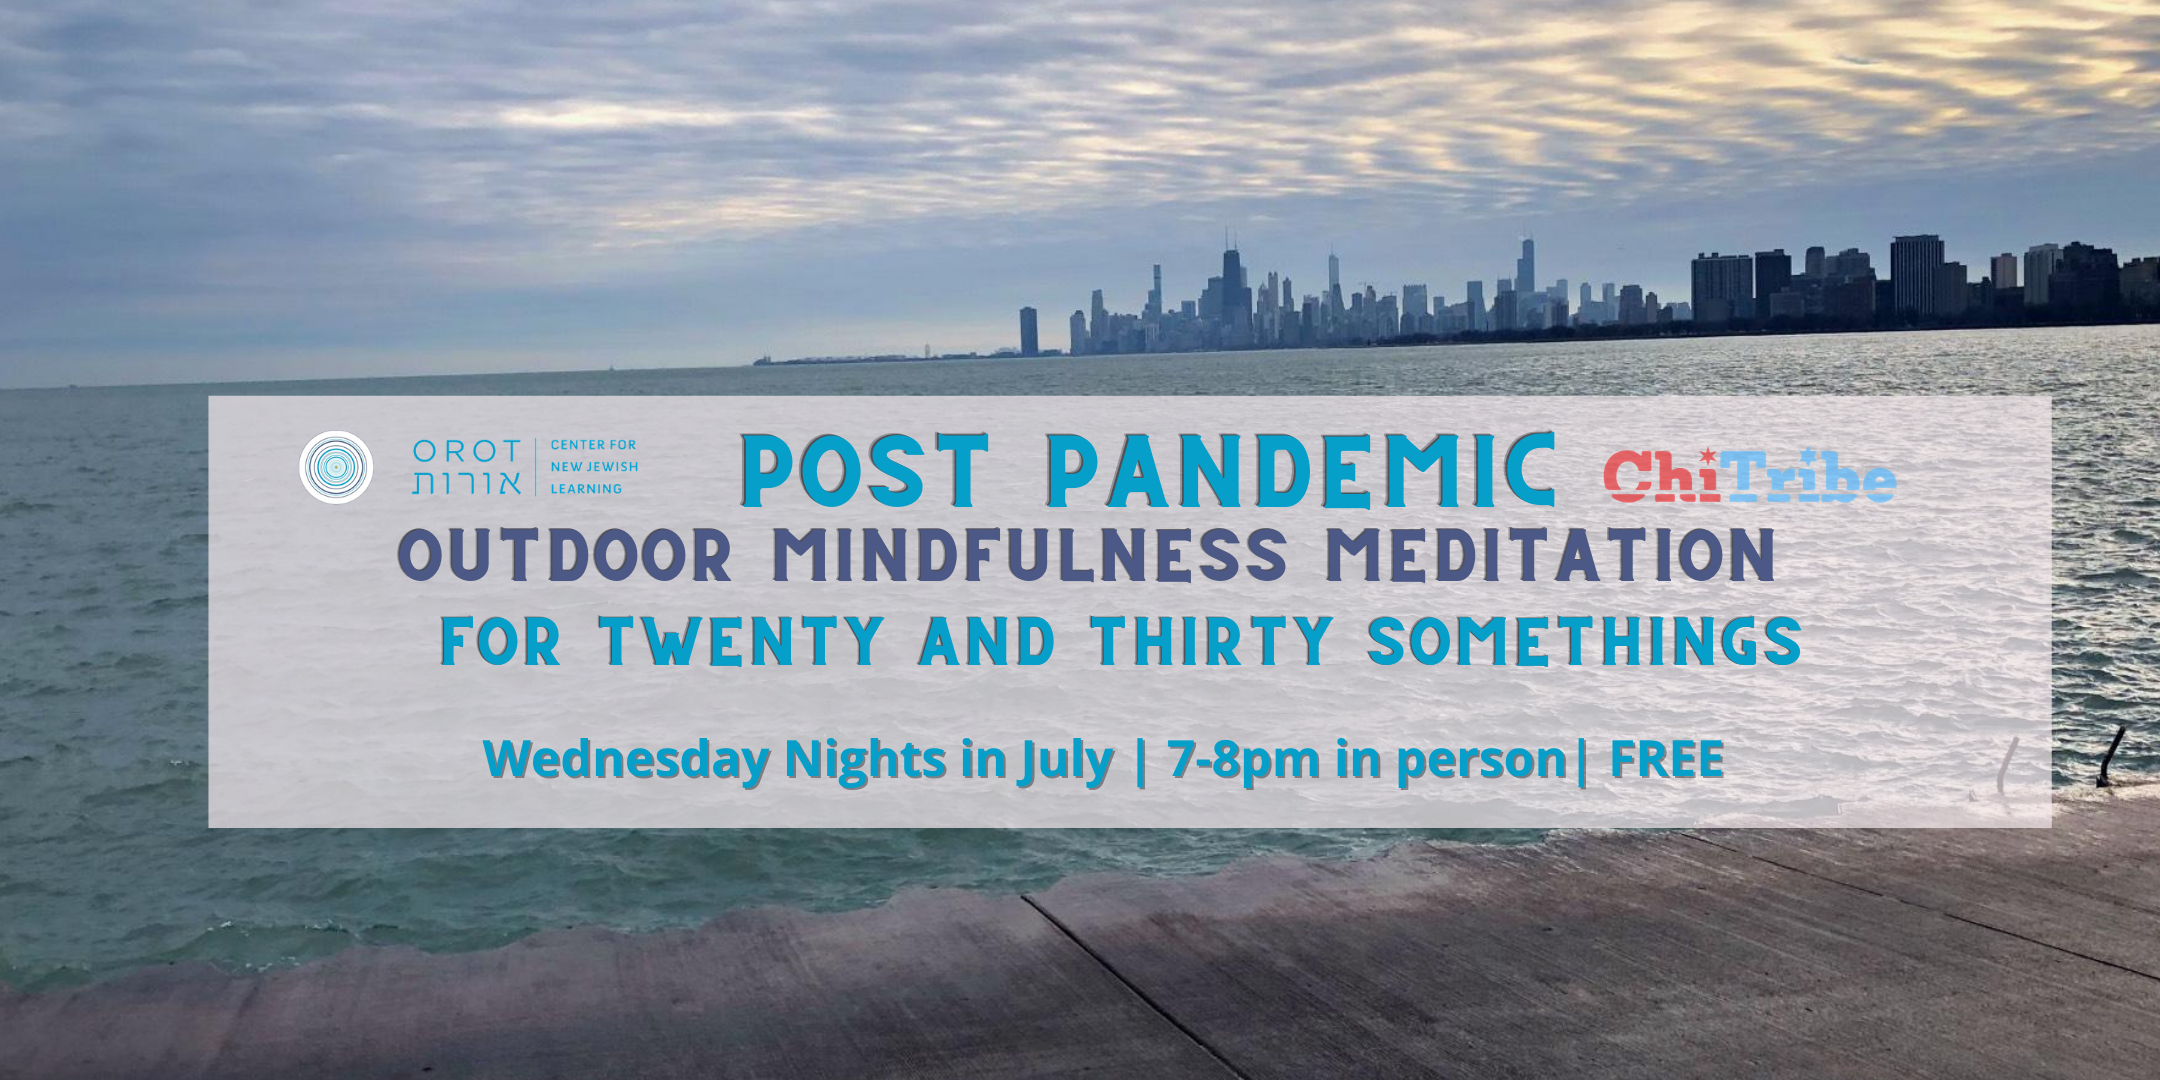 Post Pandemic Mindfulness Meditation Sits for Twenty and Thirty Somethings